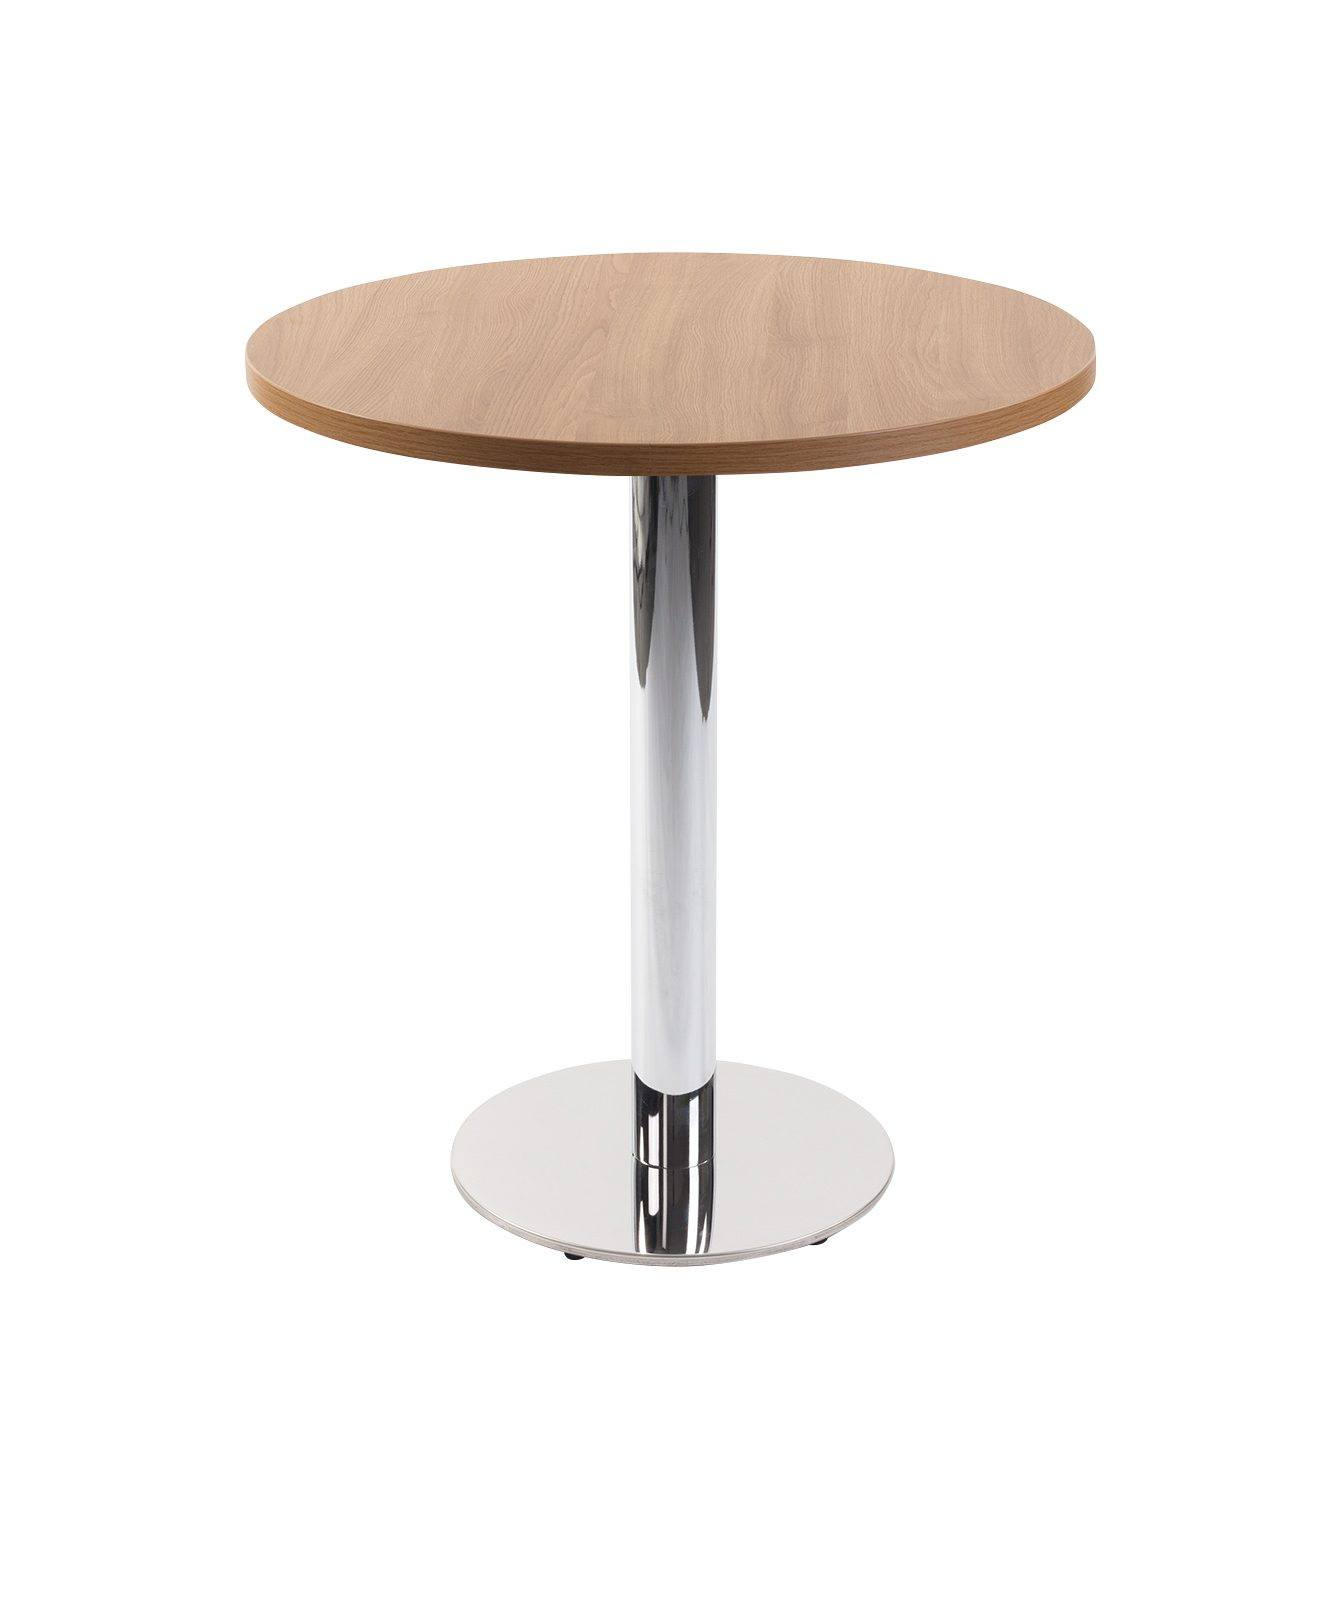 Lucci Round Coffee Table Base Round Wood Top